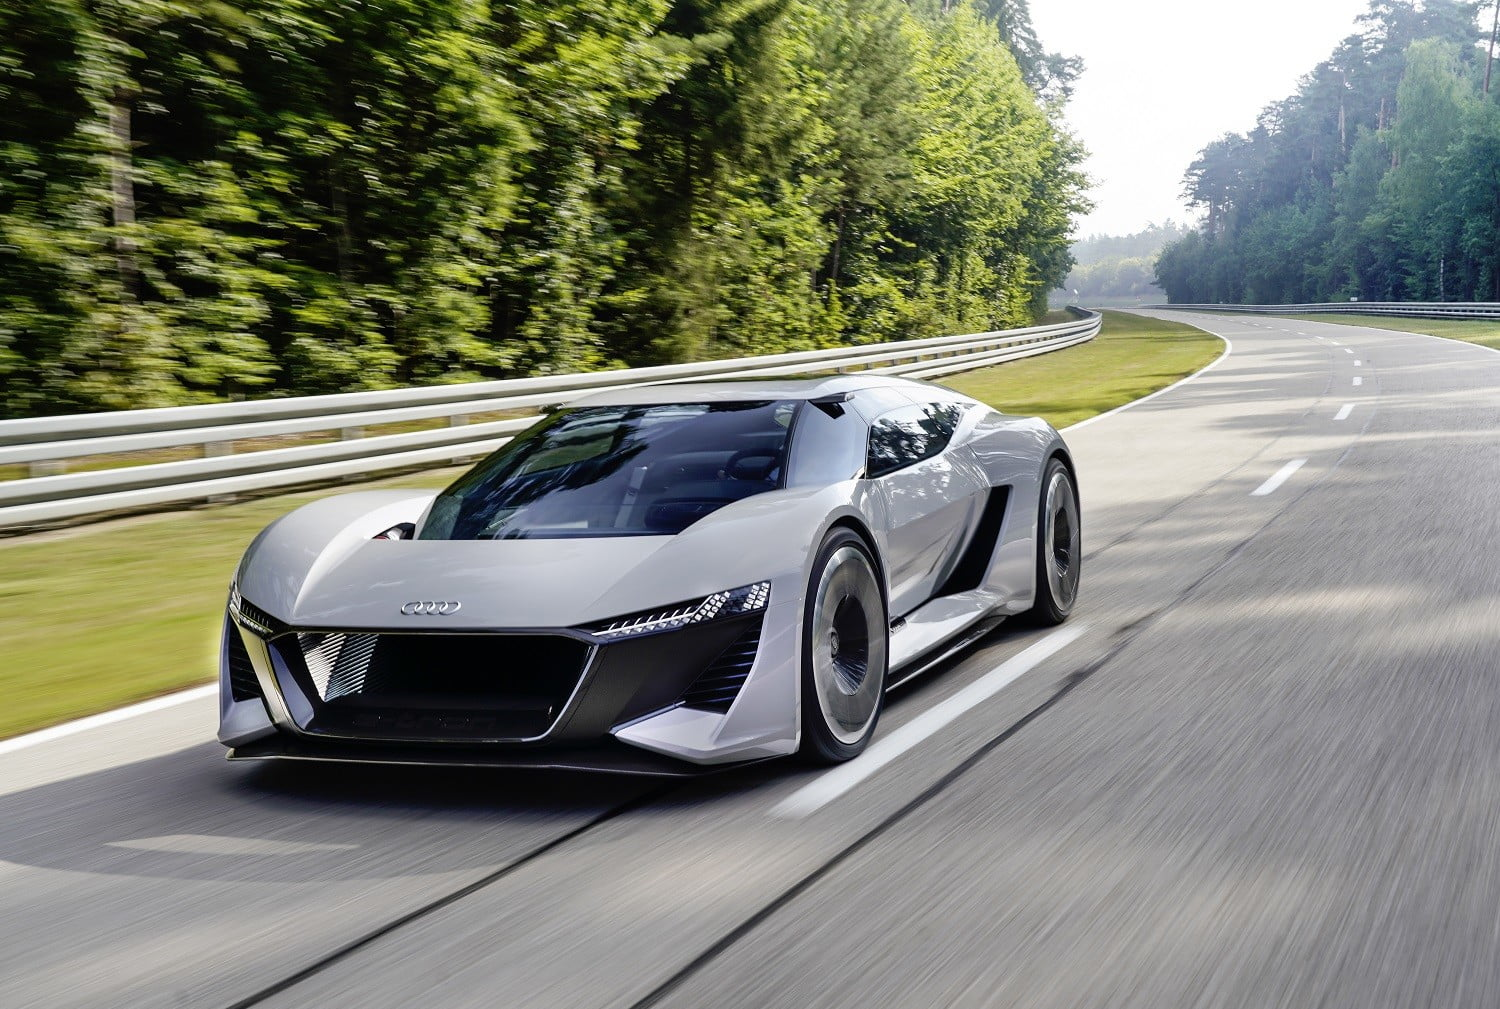 Audi Pb 18 E Tron Concept Allies Performance And Electrification